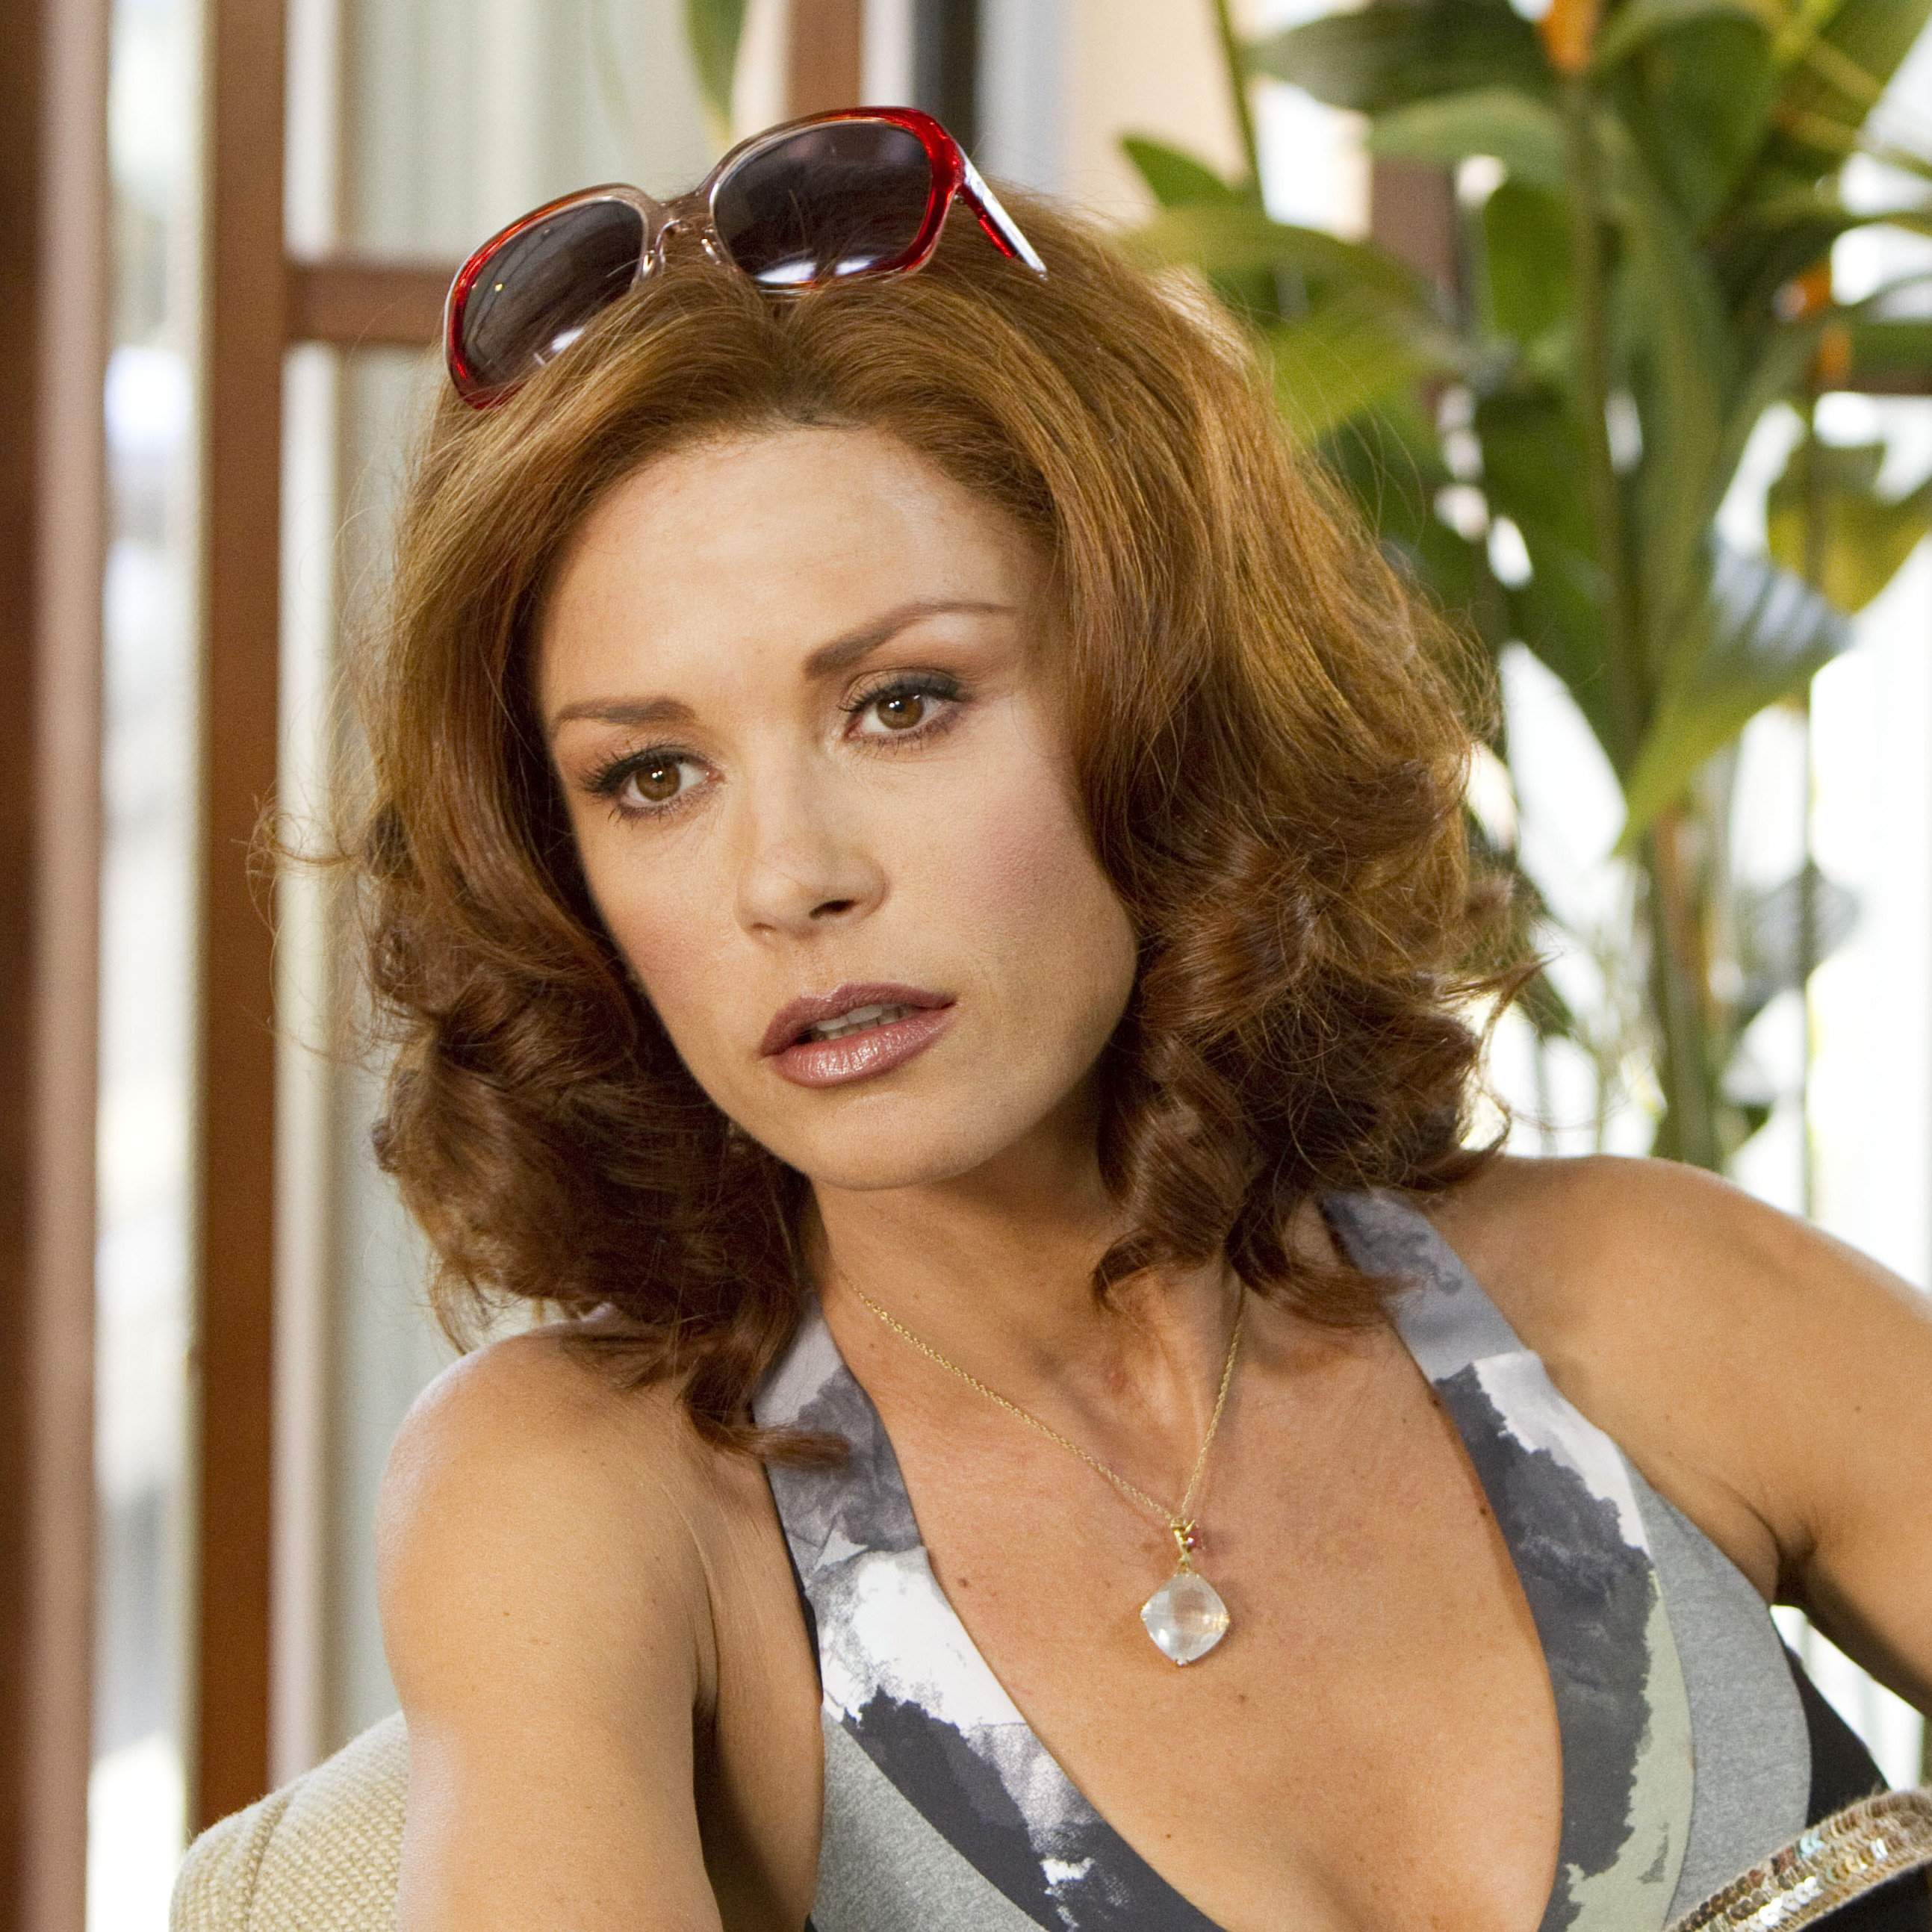 Tulip (Catherine Zeta-Jones), a veteran in the world of Vegas sports gambling, doesn't appreciate the ingenue's increasing admiration of her husband.